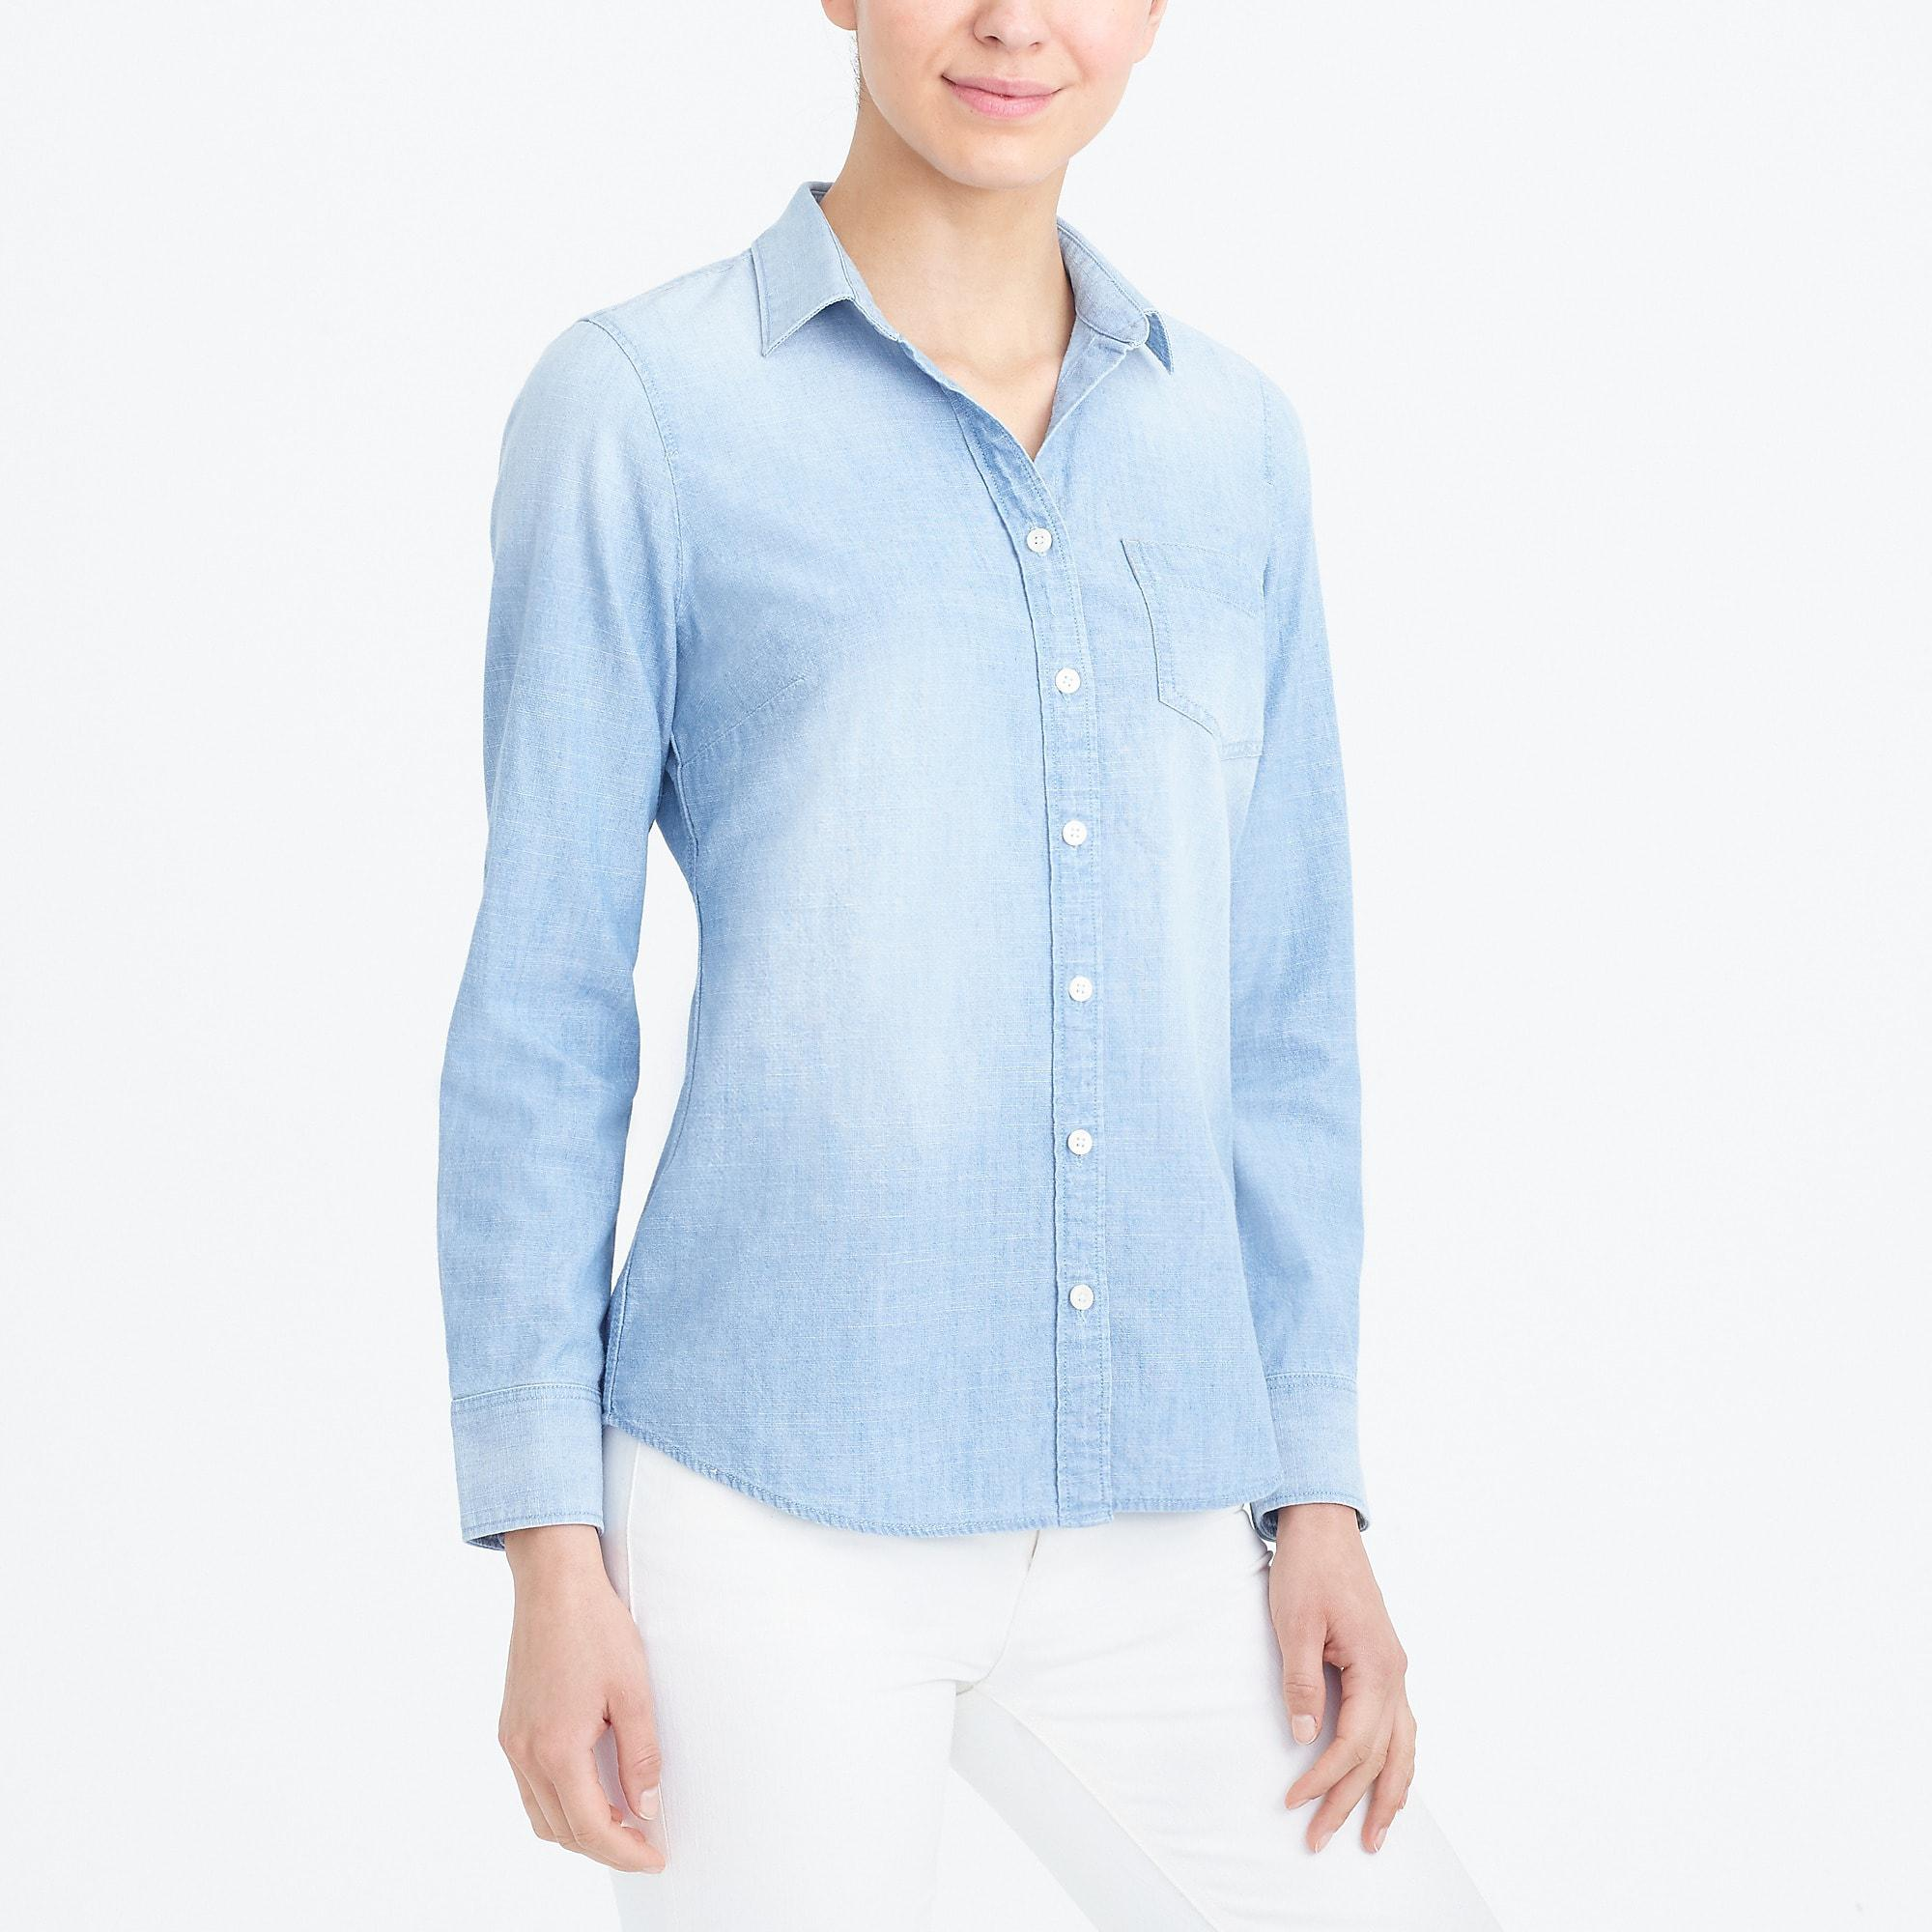 7447c6e6901 J.Crew Chambray Shirt In Perfect Fit in Blue - Lyst